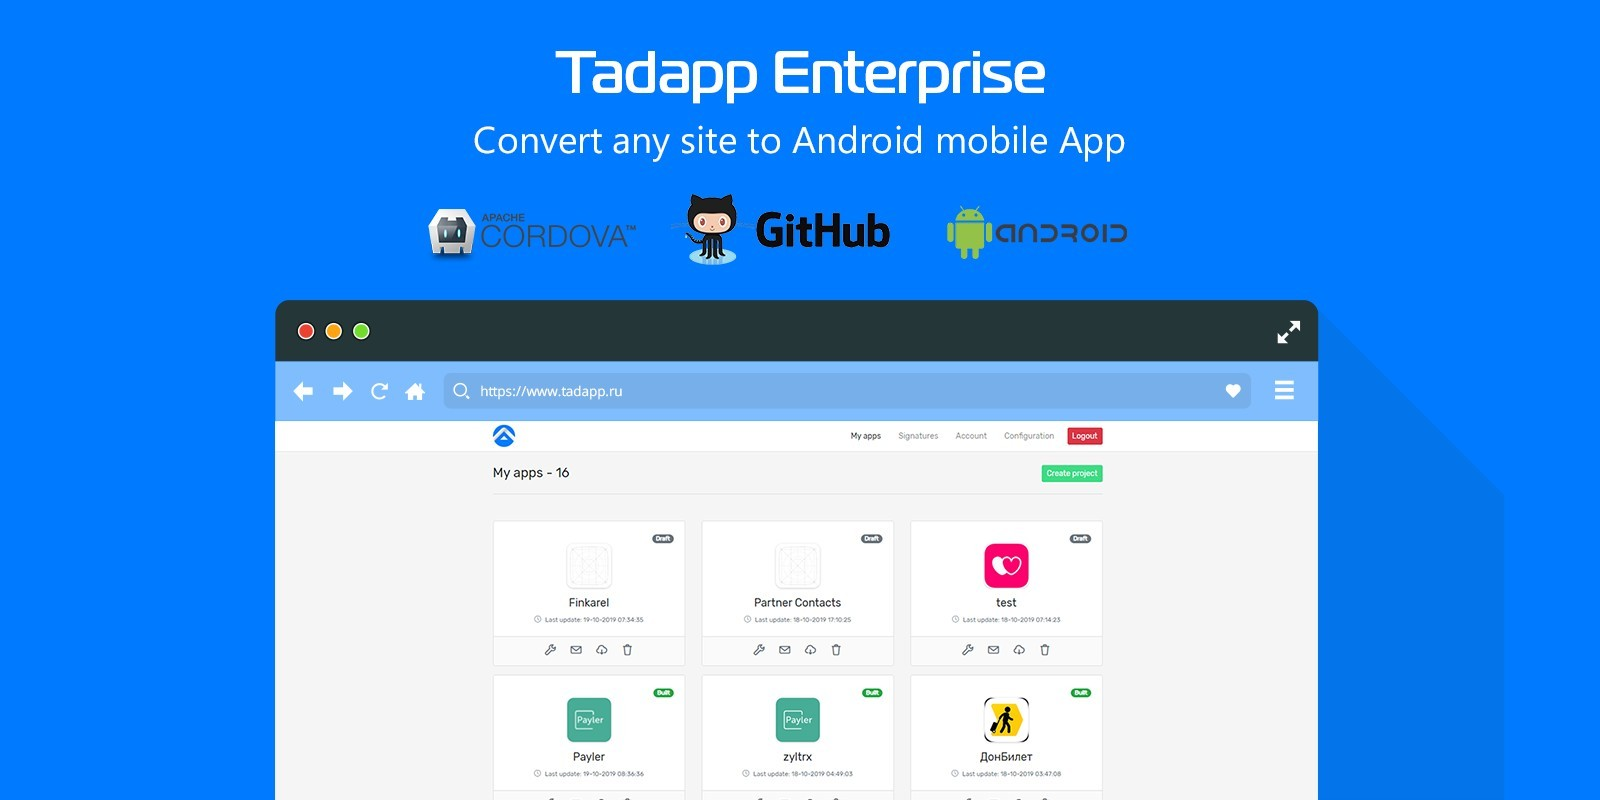 Tadapp - Convert Site To Android Mobile App